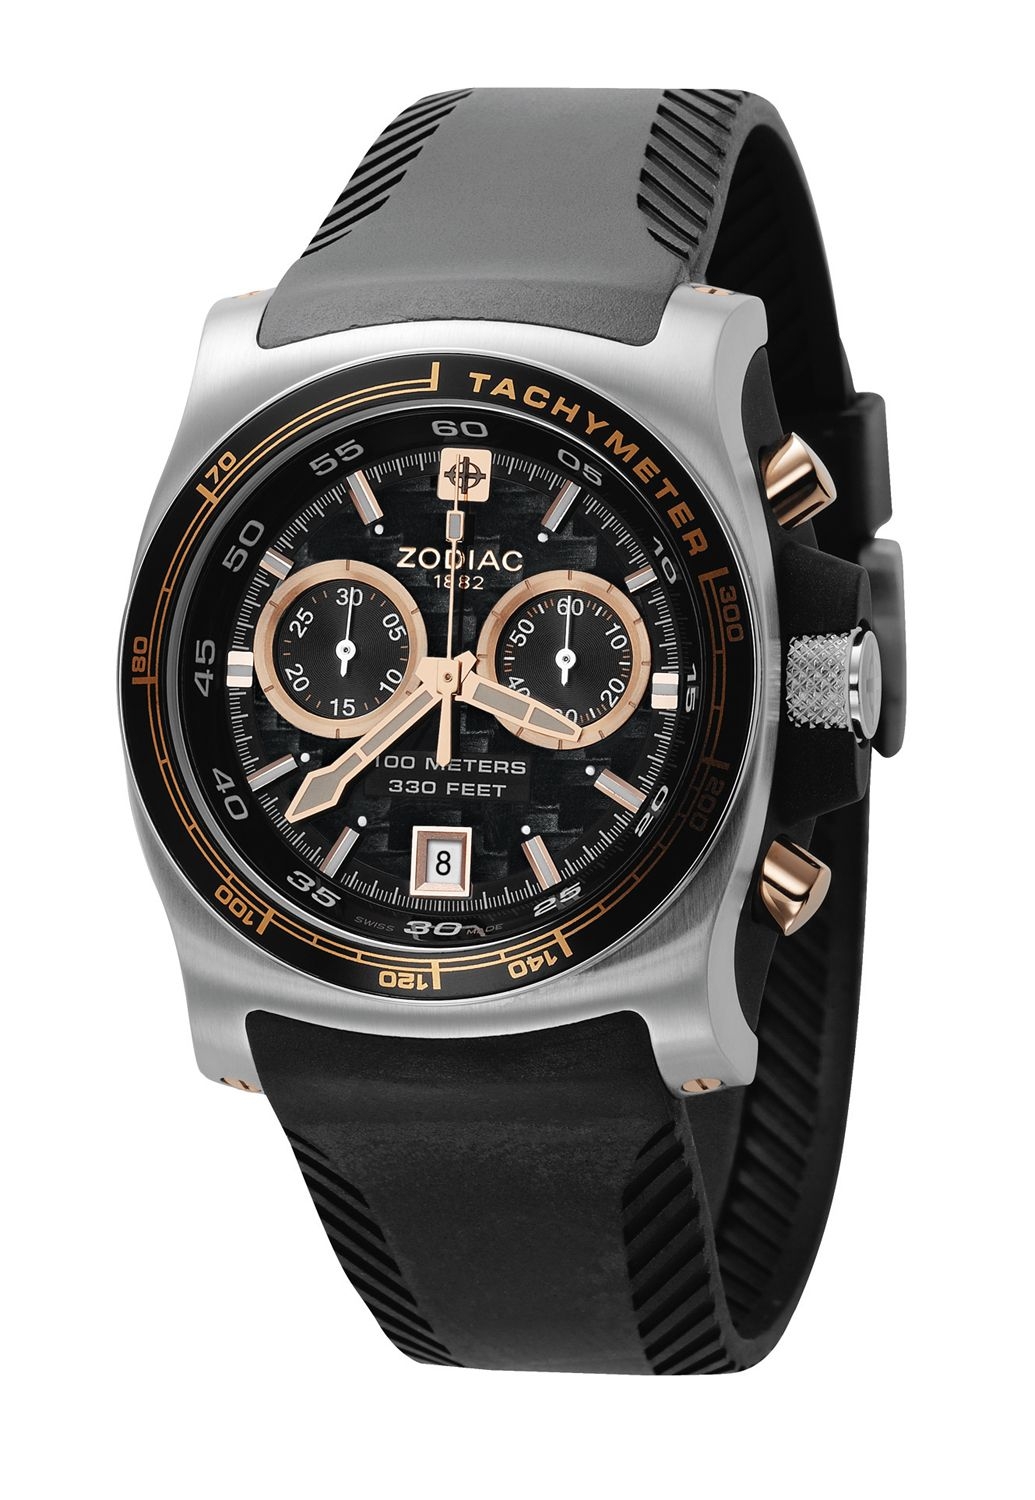 Zodiac Adventure sport ZO7502 gentlemens watch product image